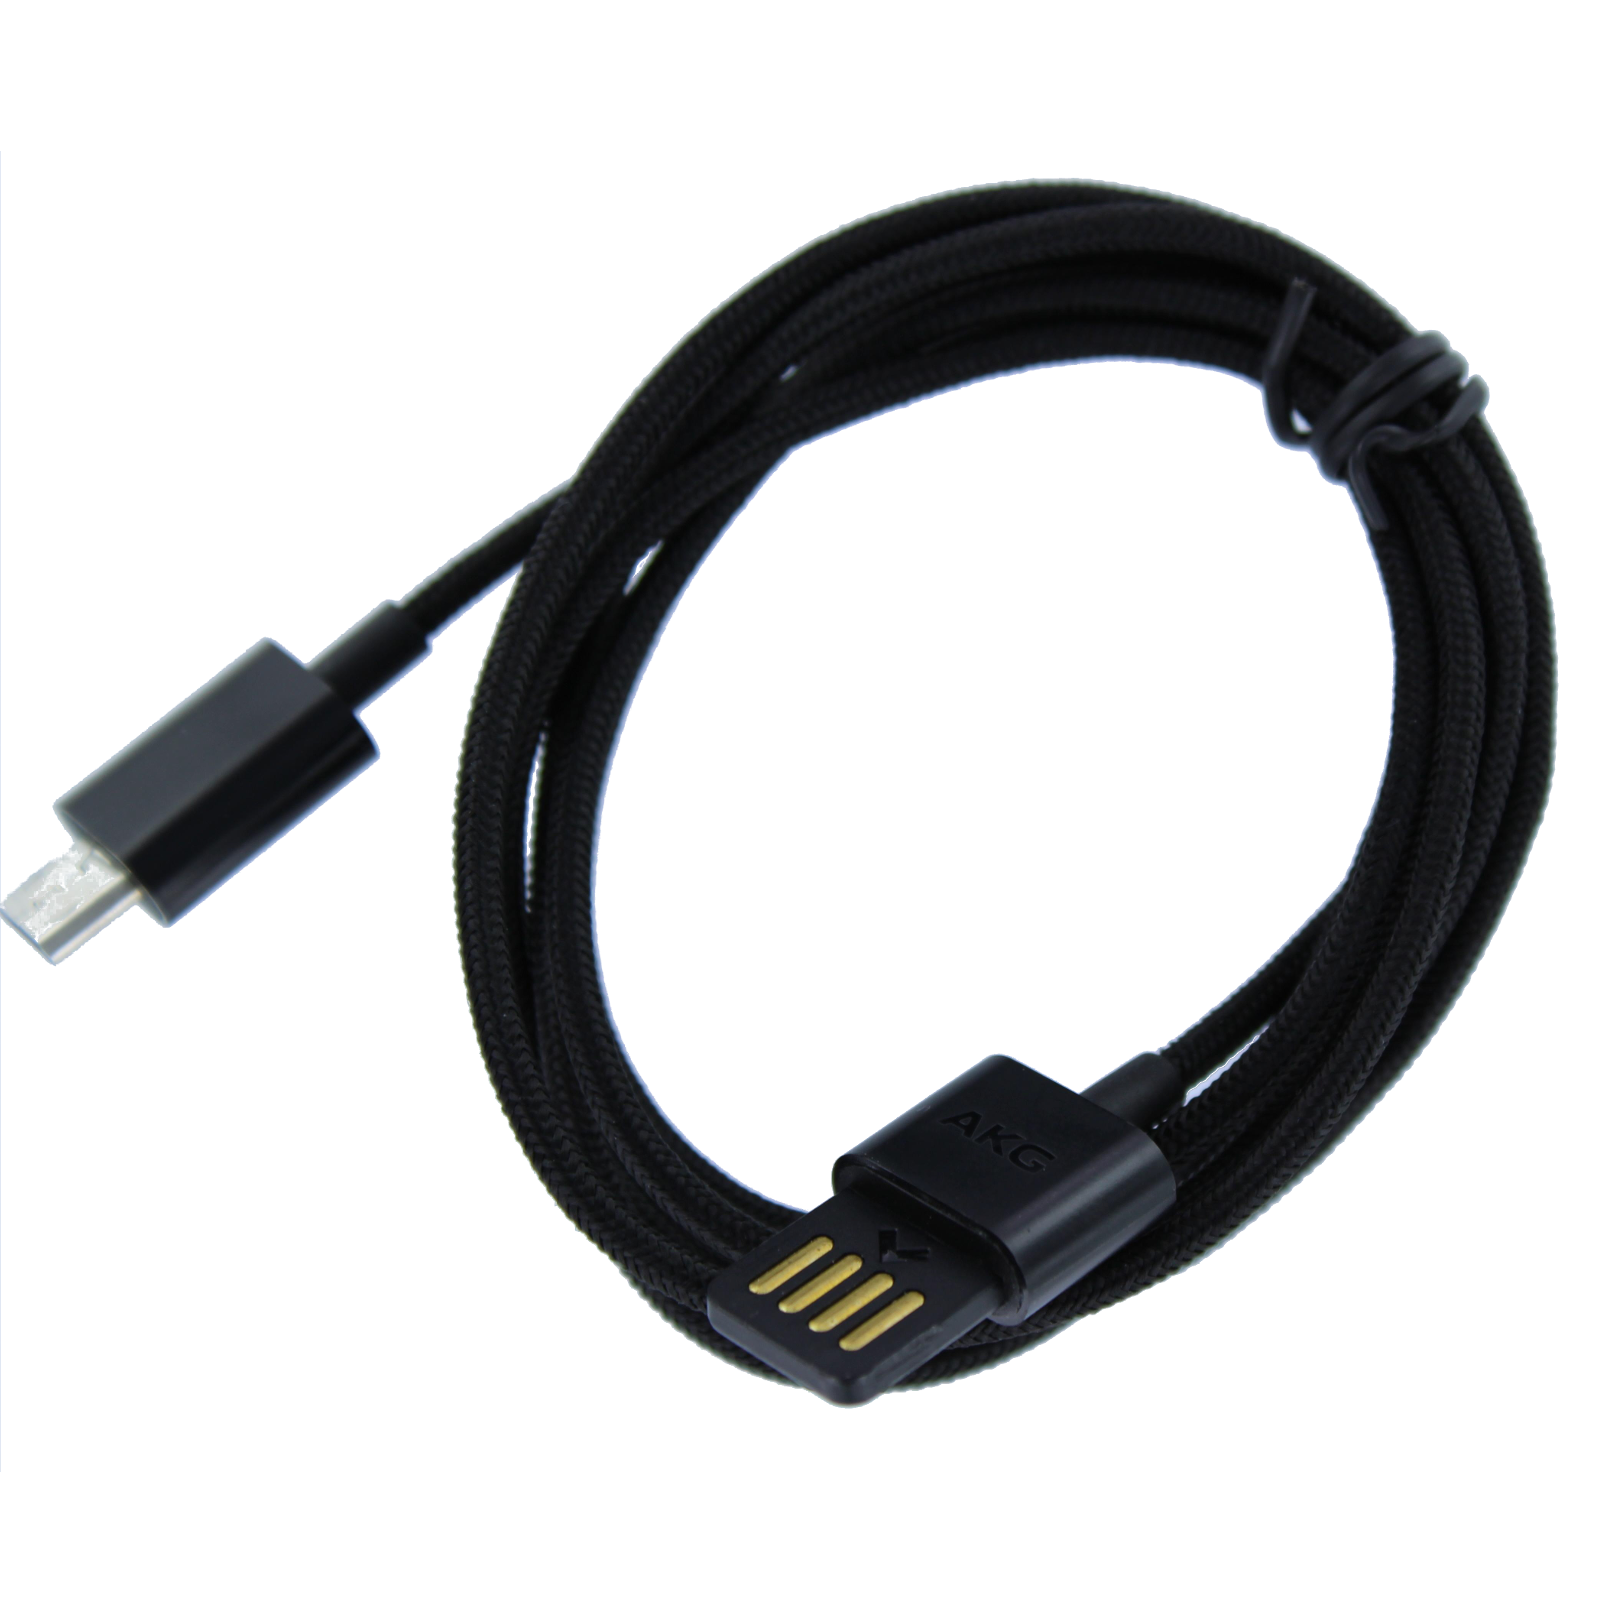 USB Charging cable, 120cm, AKG N90 - Black - Charging cable - Hero